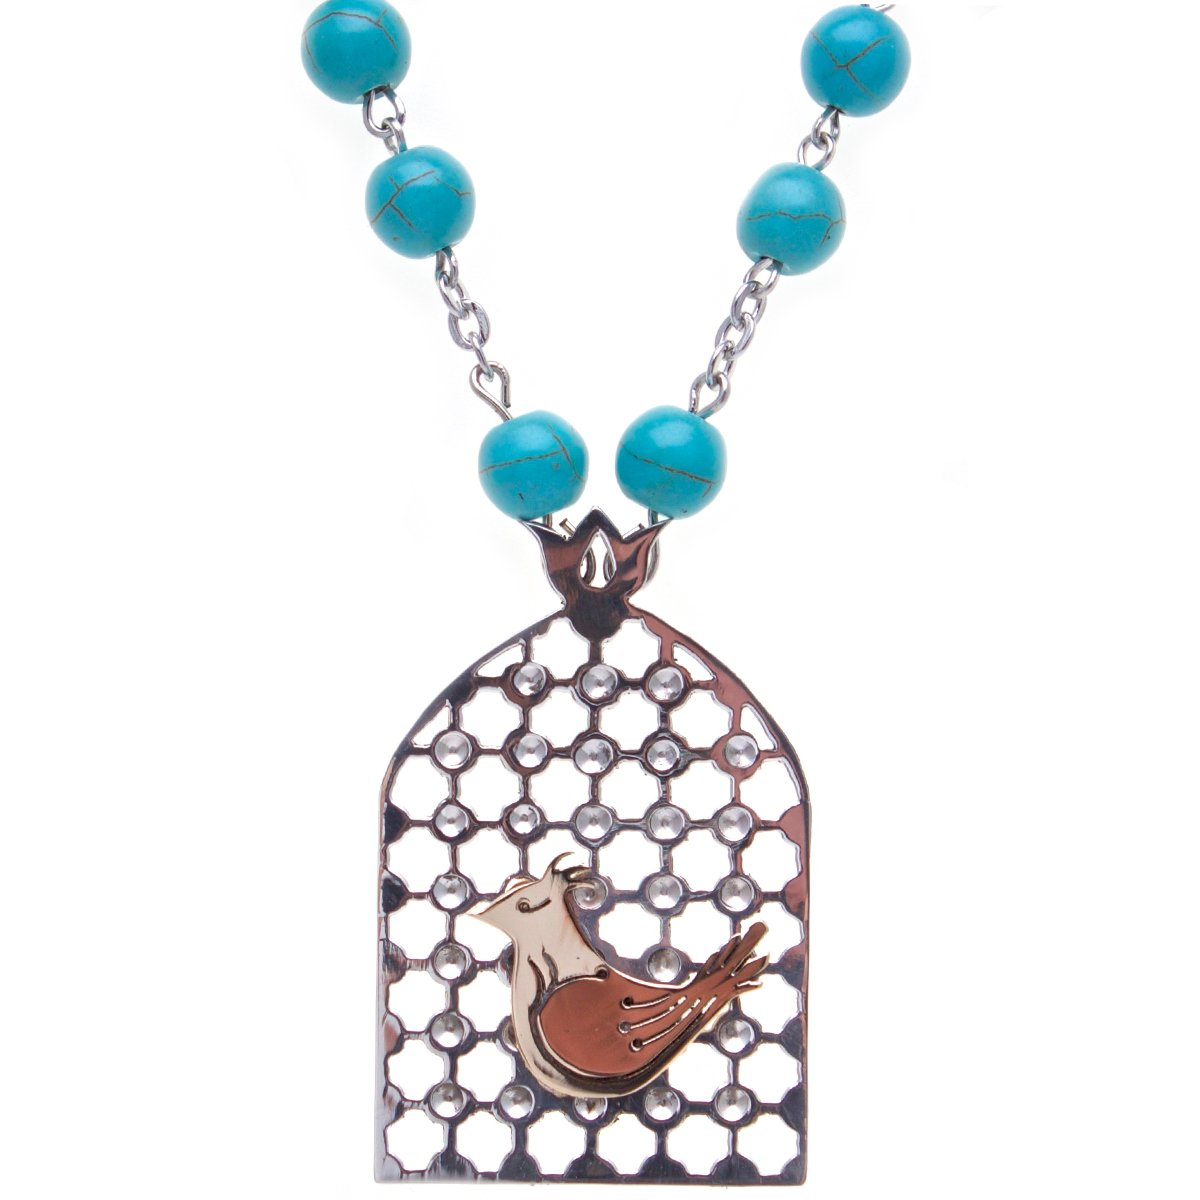 14K Gold Sterling Silver 999 Morghe Amin Necklace Iranian Persian Sharzad Morgh Love Bird Iran Art (Necklace, Earrings, Bracelet) by Asoodehdelan (Image #1)